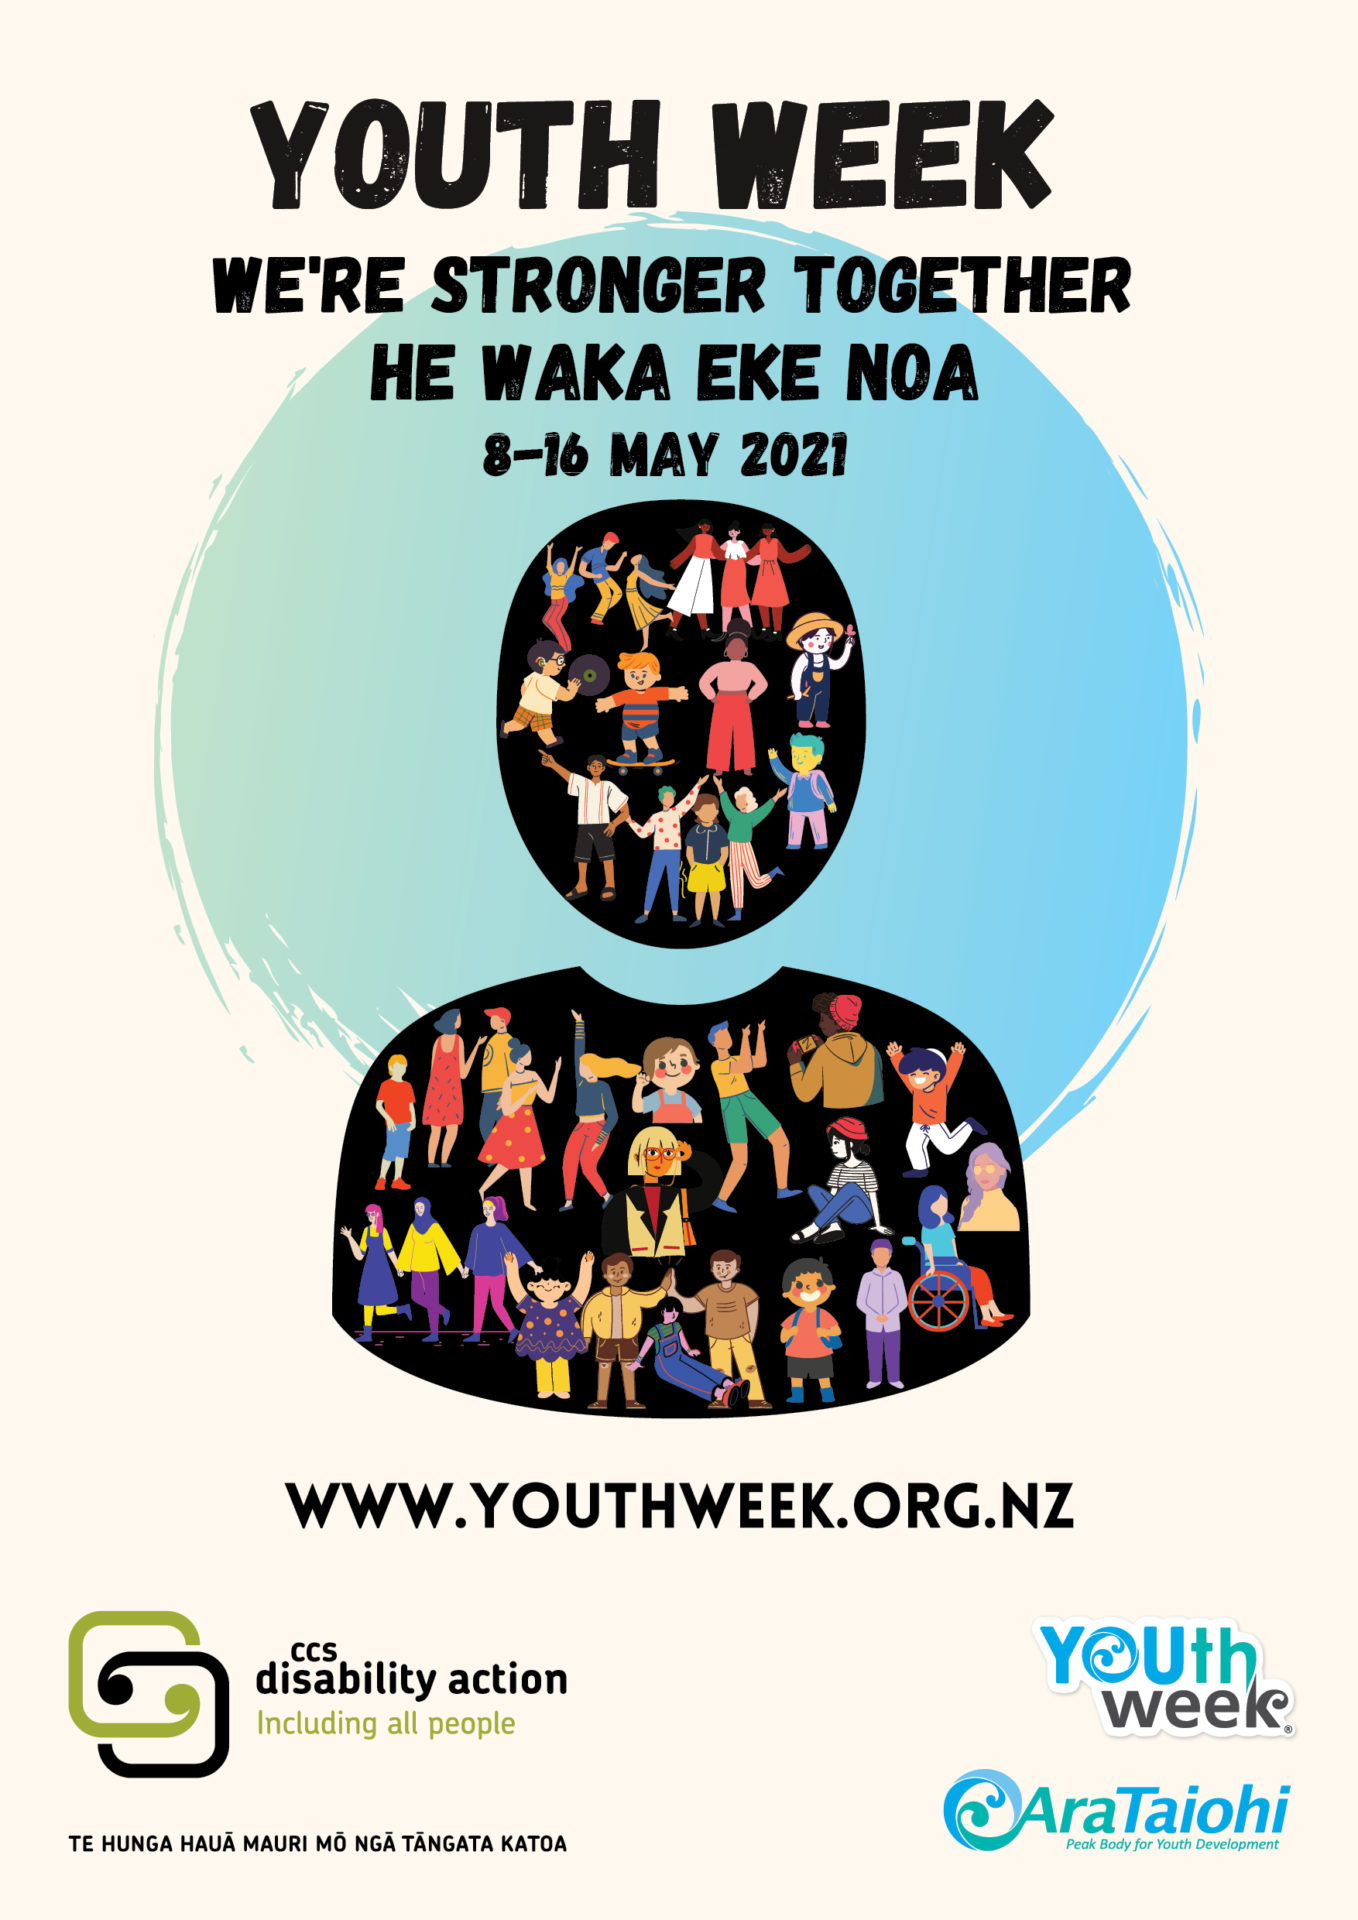 """The text Youth Week, """"We're Stronger Together"""", """"He waka eke noa"""" and the Youth Week Dates are written at the top of the poster. The image is a silhouette head and shoulders in front of a shaded blue yellow green circle. Inside the head and shoulders are cartoon people of diverse appearance and ability. The  Youth Week, Ara Taiohi and CCS Disability Action logos are shown at the bottom."""